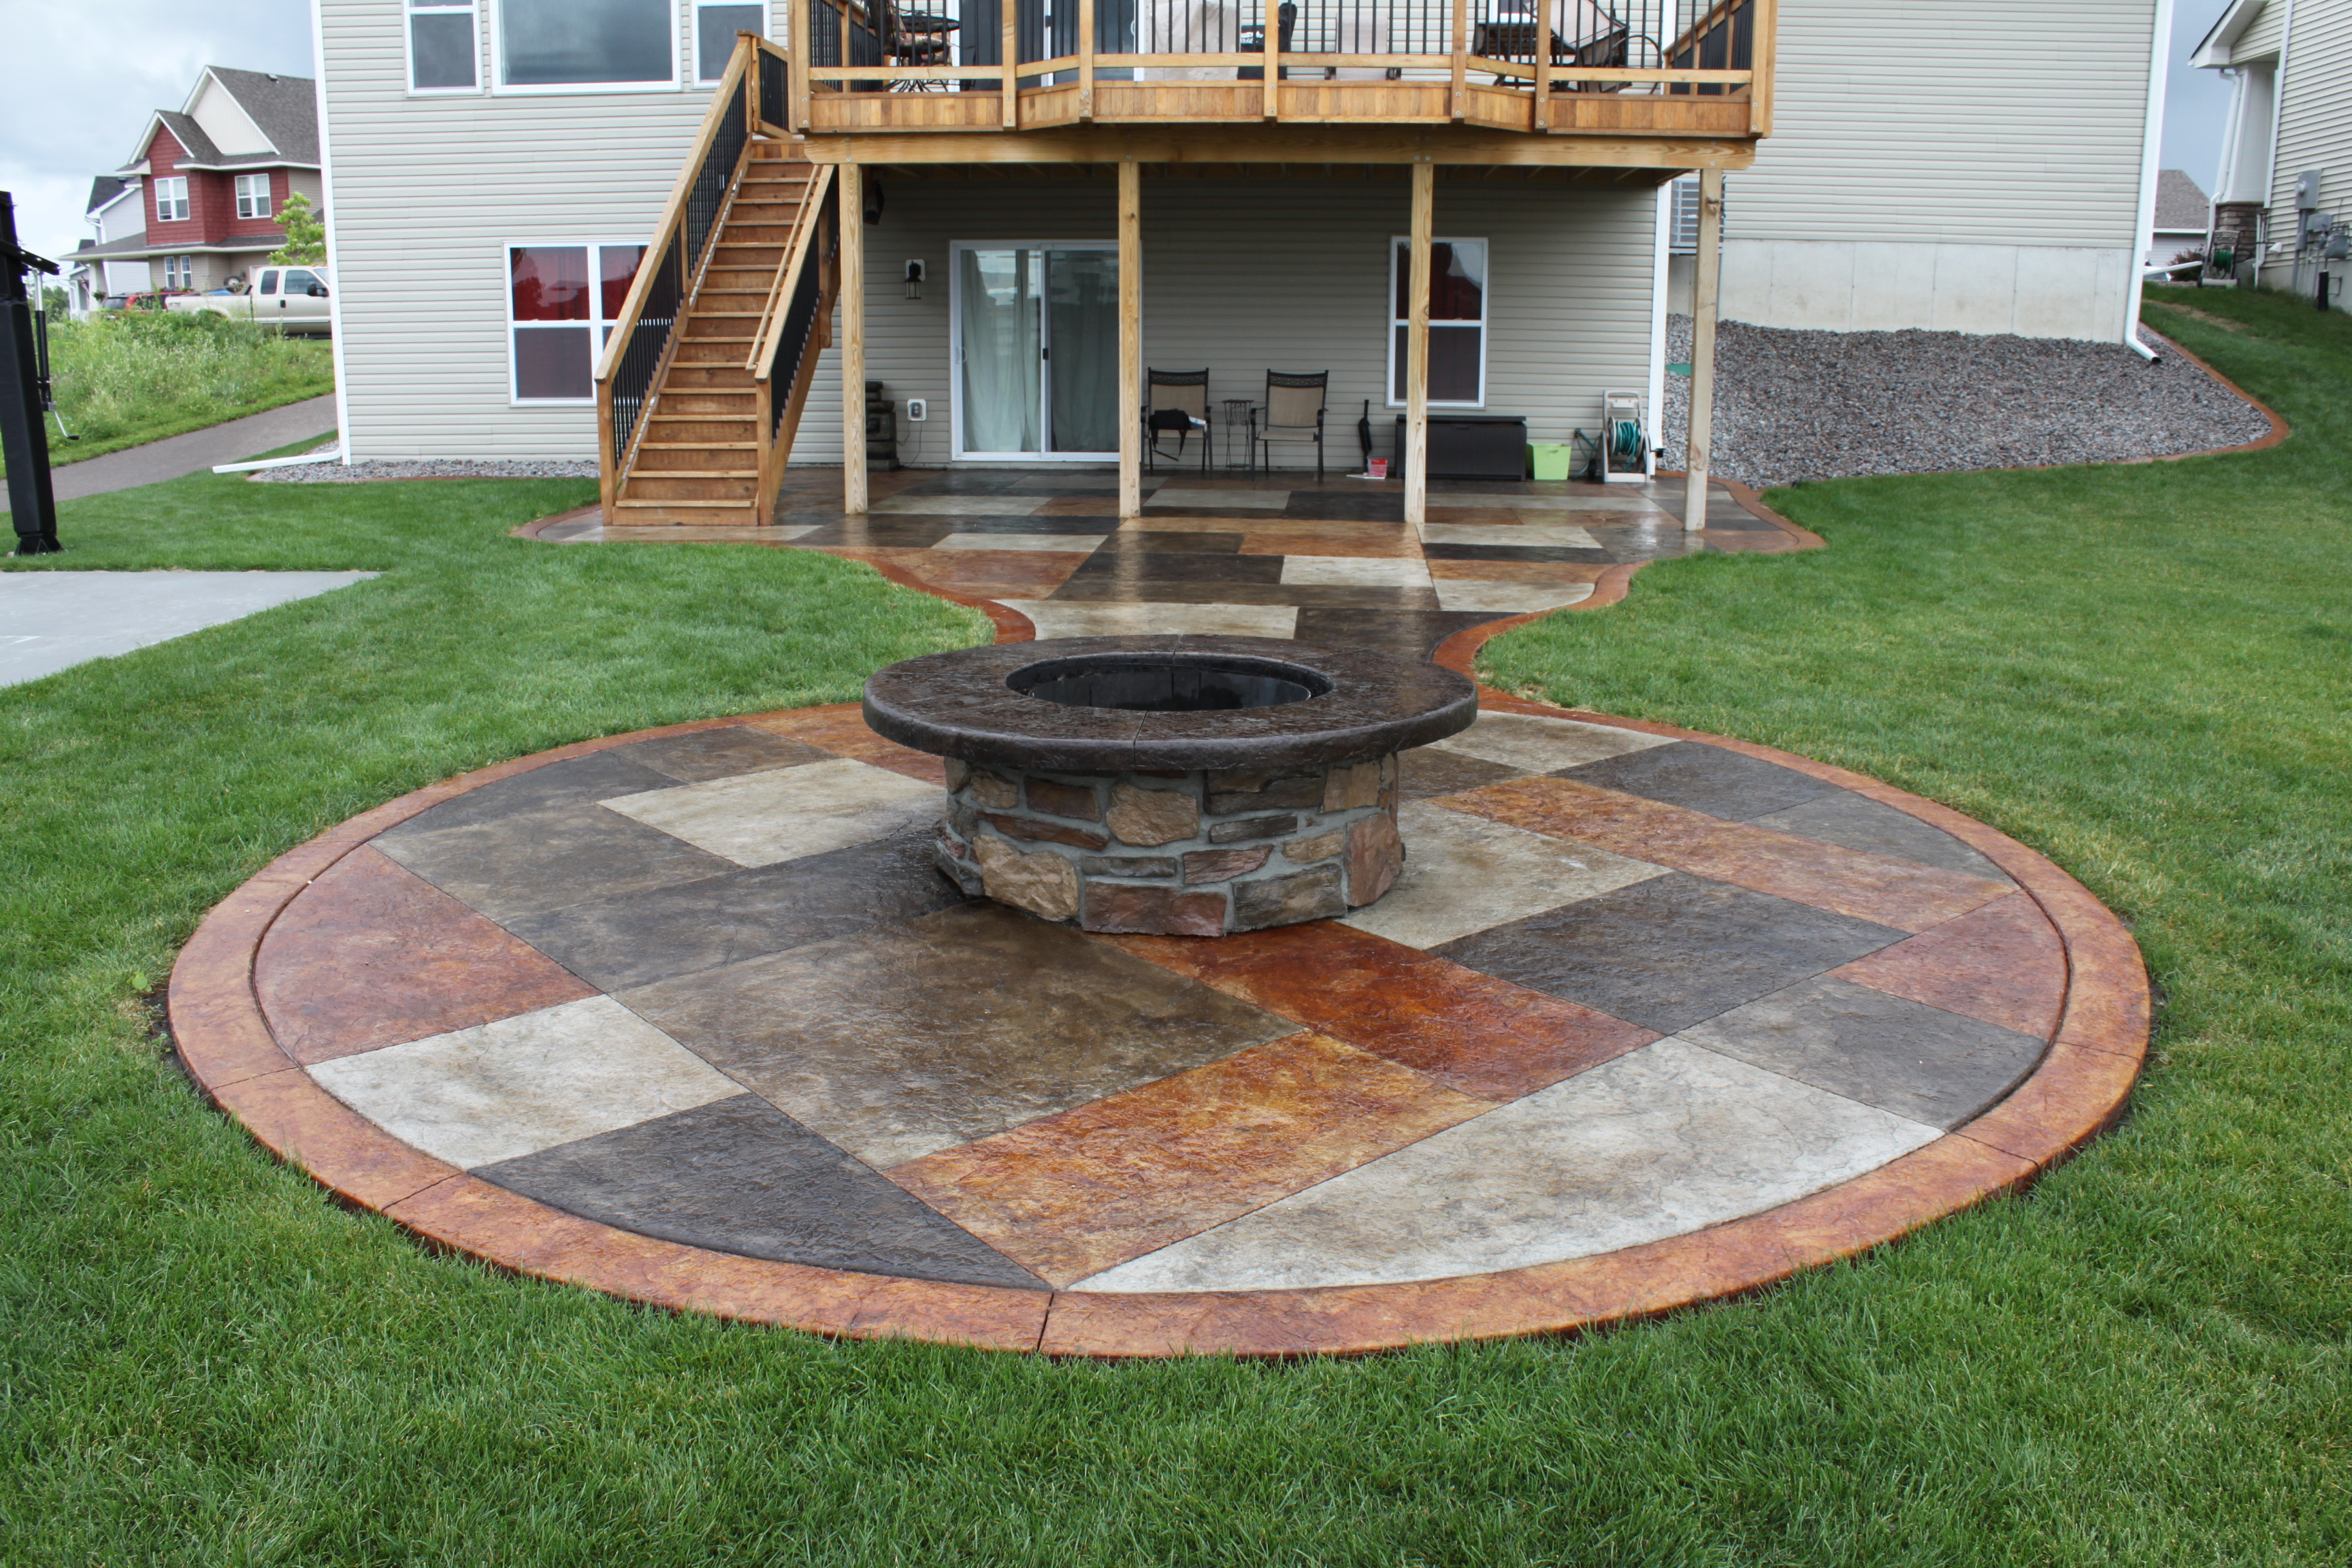 Stamped concrete patterns flooring options designs dayton ohio with brown color Stamped concrete patterns flooring options design with seating wall and fireplace